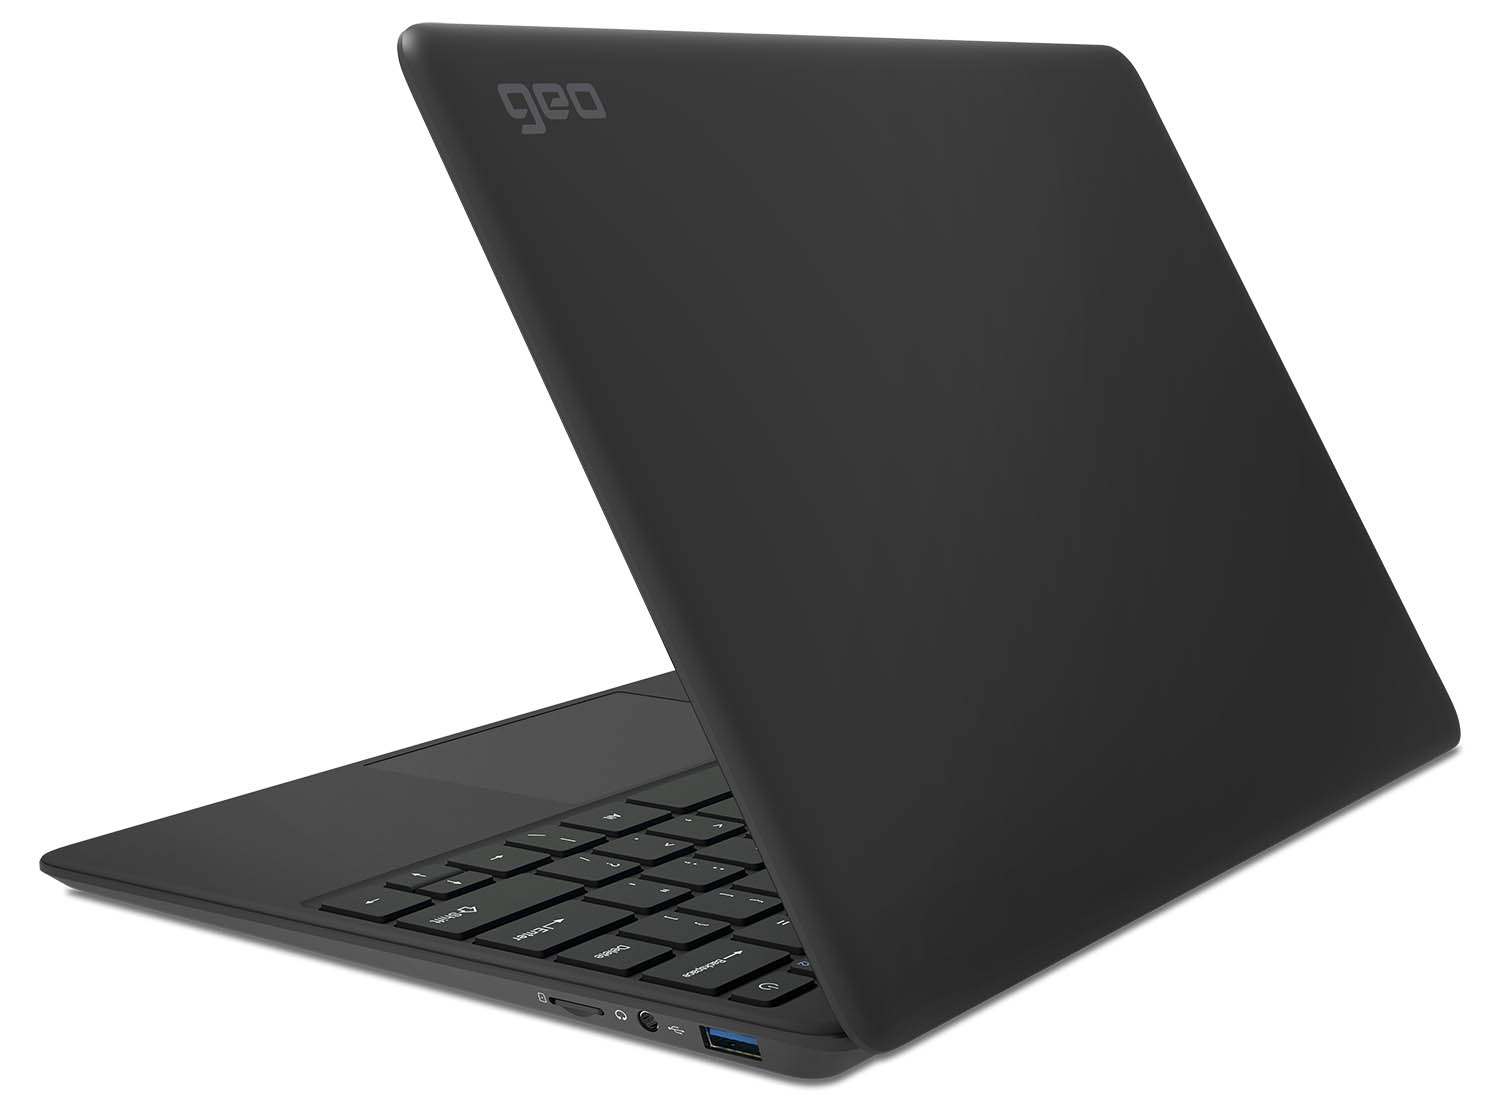 View of the GeoBook 2e laptop from the rear right side